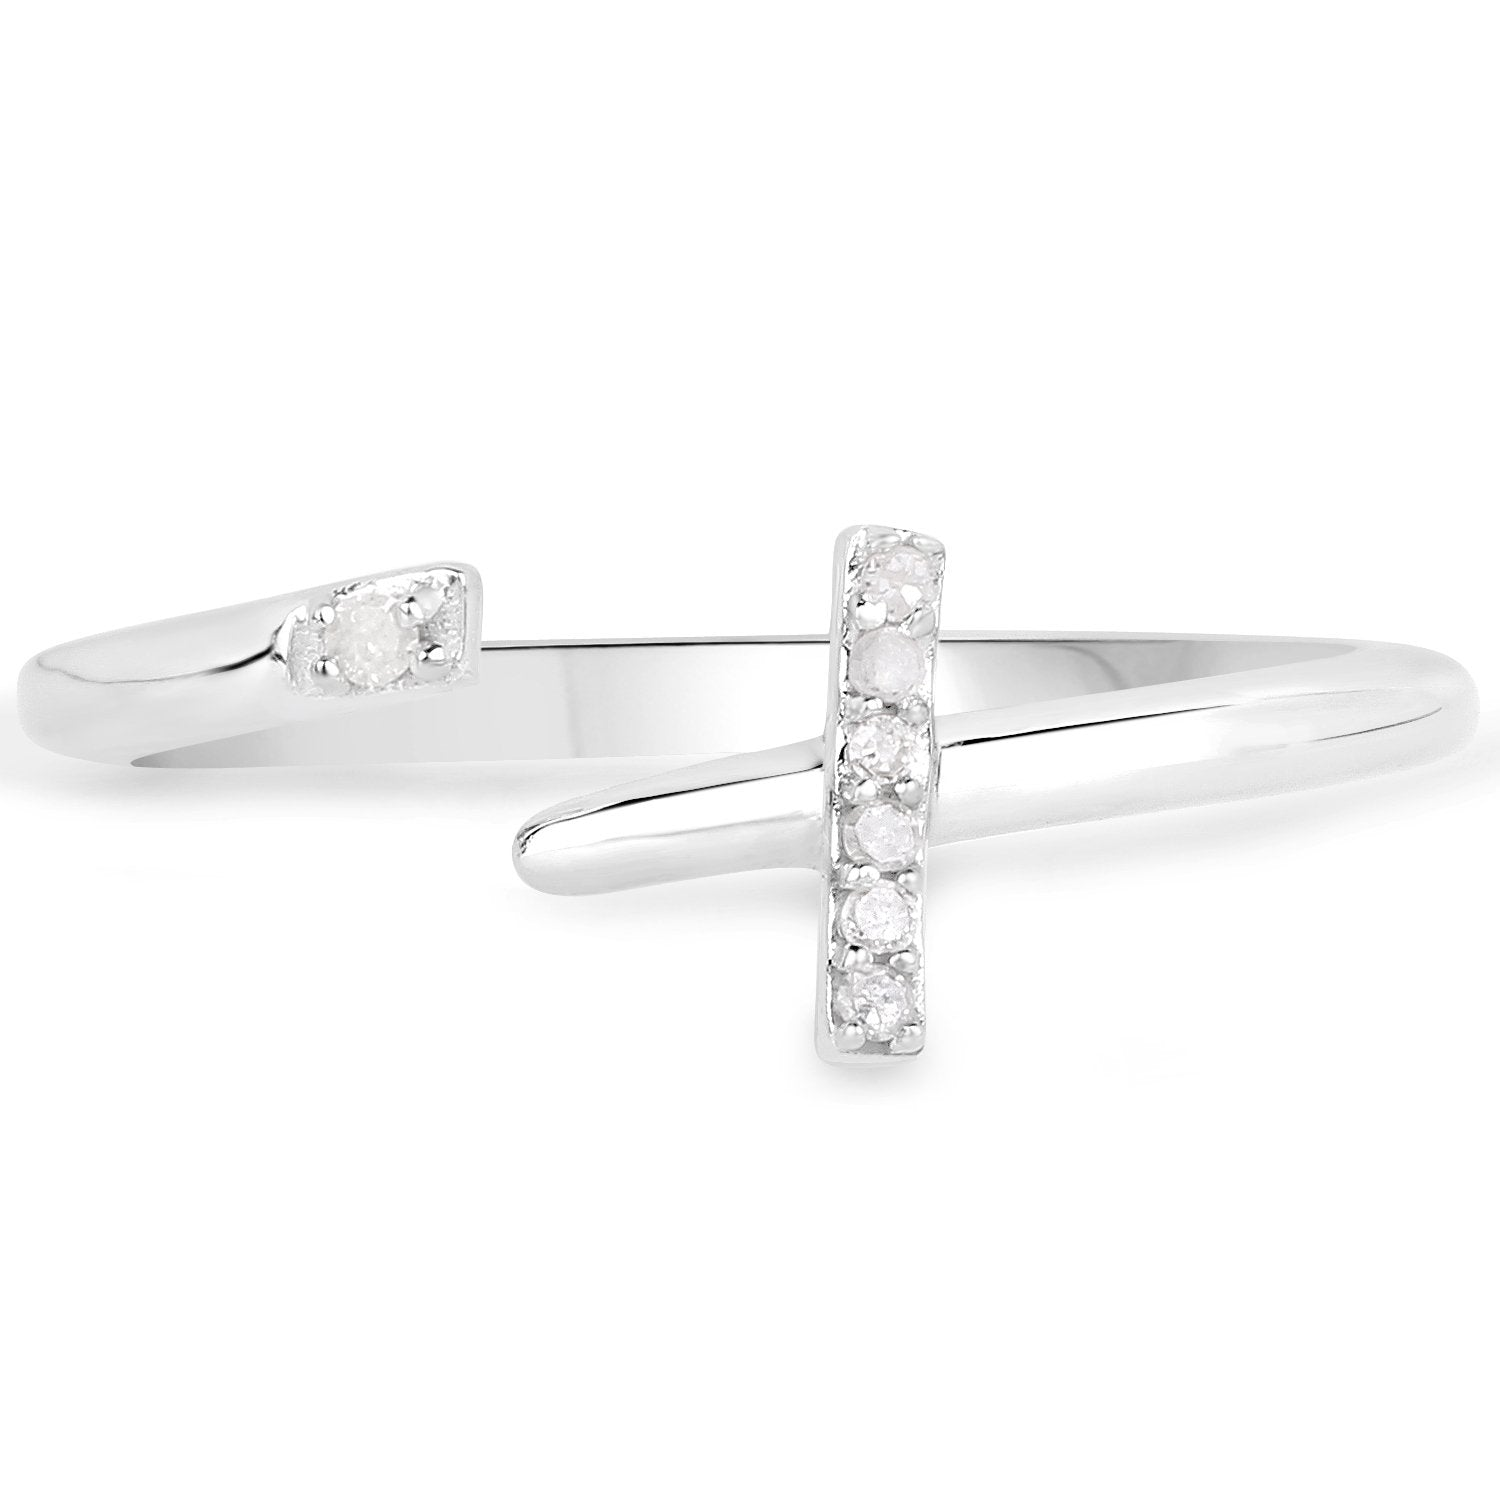 LoveHuang 0.04 Carats Genuine White Diamond (I-J, I2-I3) Cross Ring Solid .925 Sterling Silver With Rhodium Plating